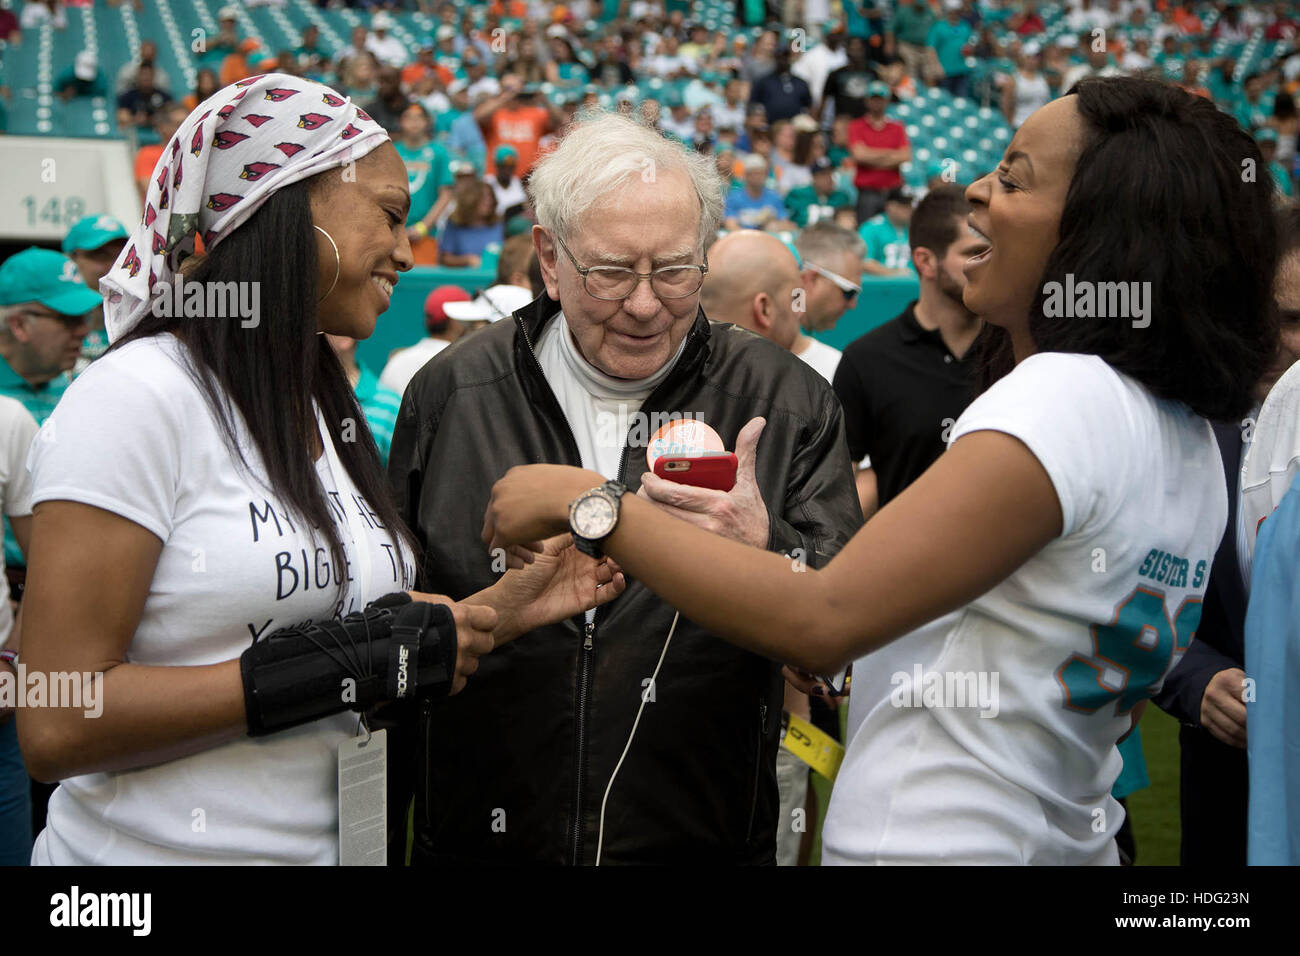 Miami Gardens, Florida, USA. 11th Dec, 2016. Warren Buffett hangs out on the Dolphins sidelines with Ndamukong Suh's Stock Photo